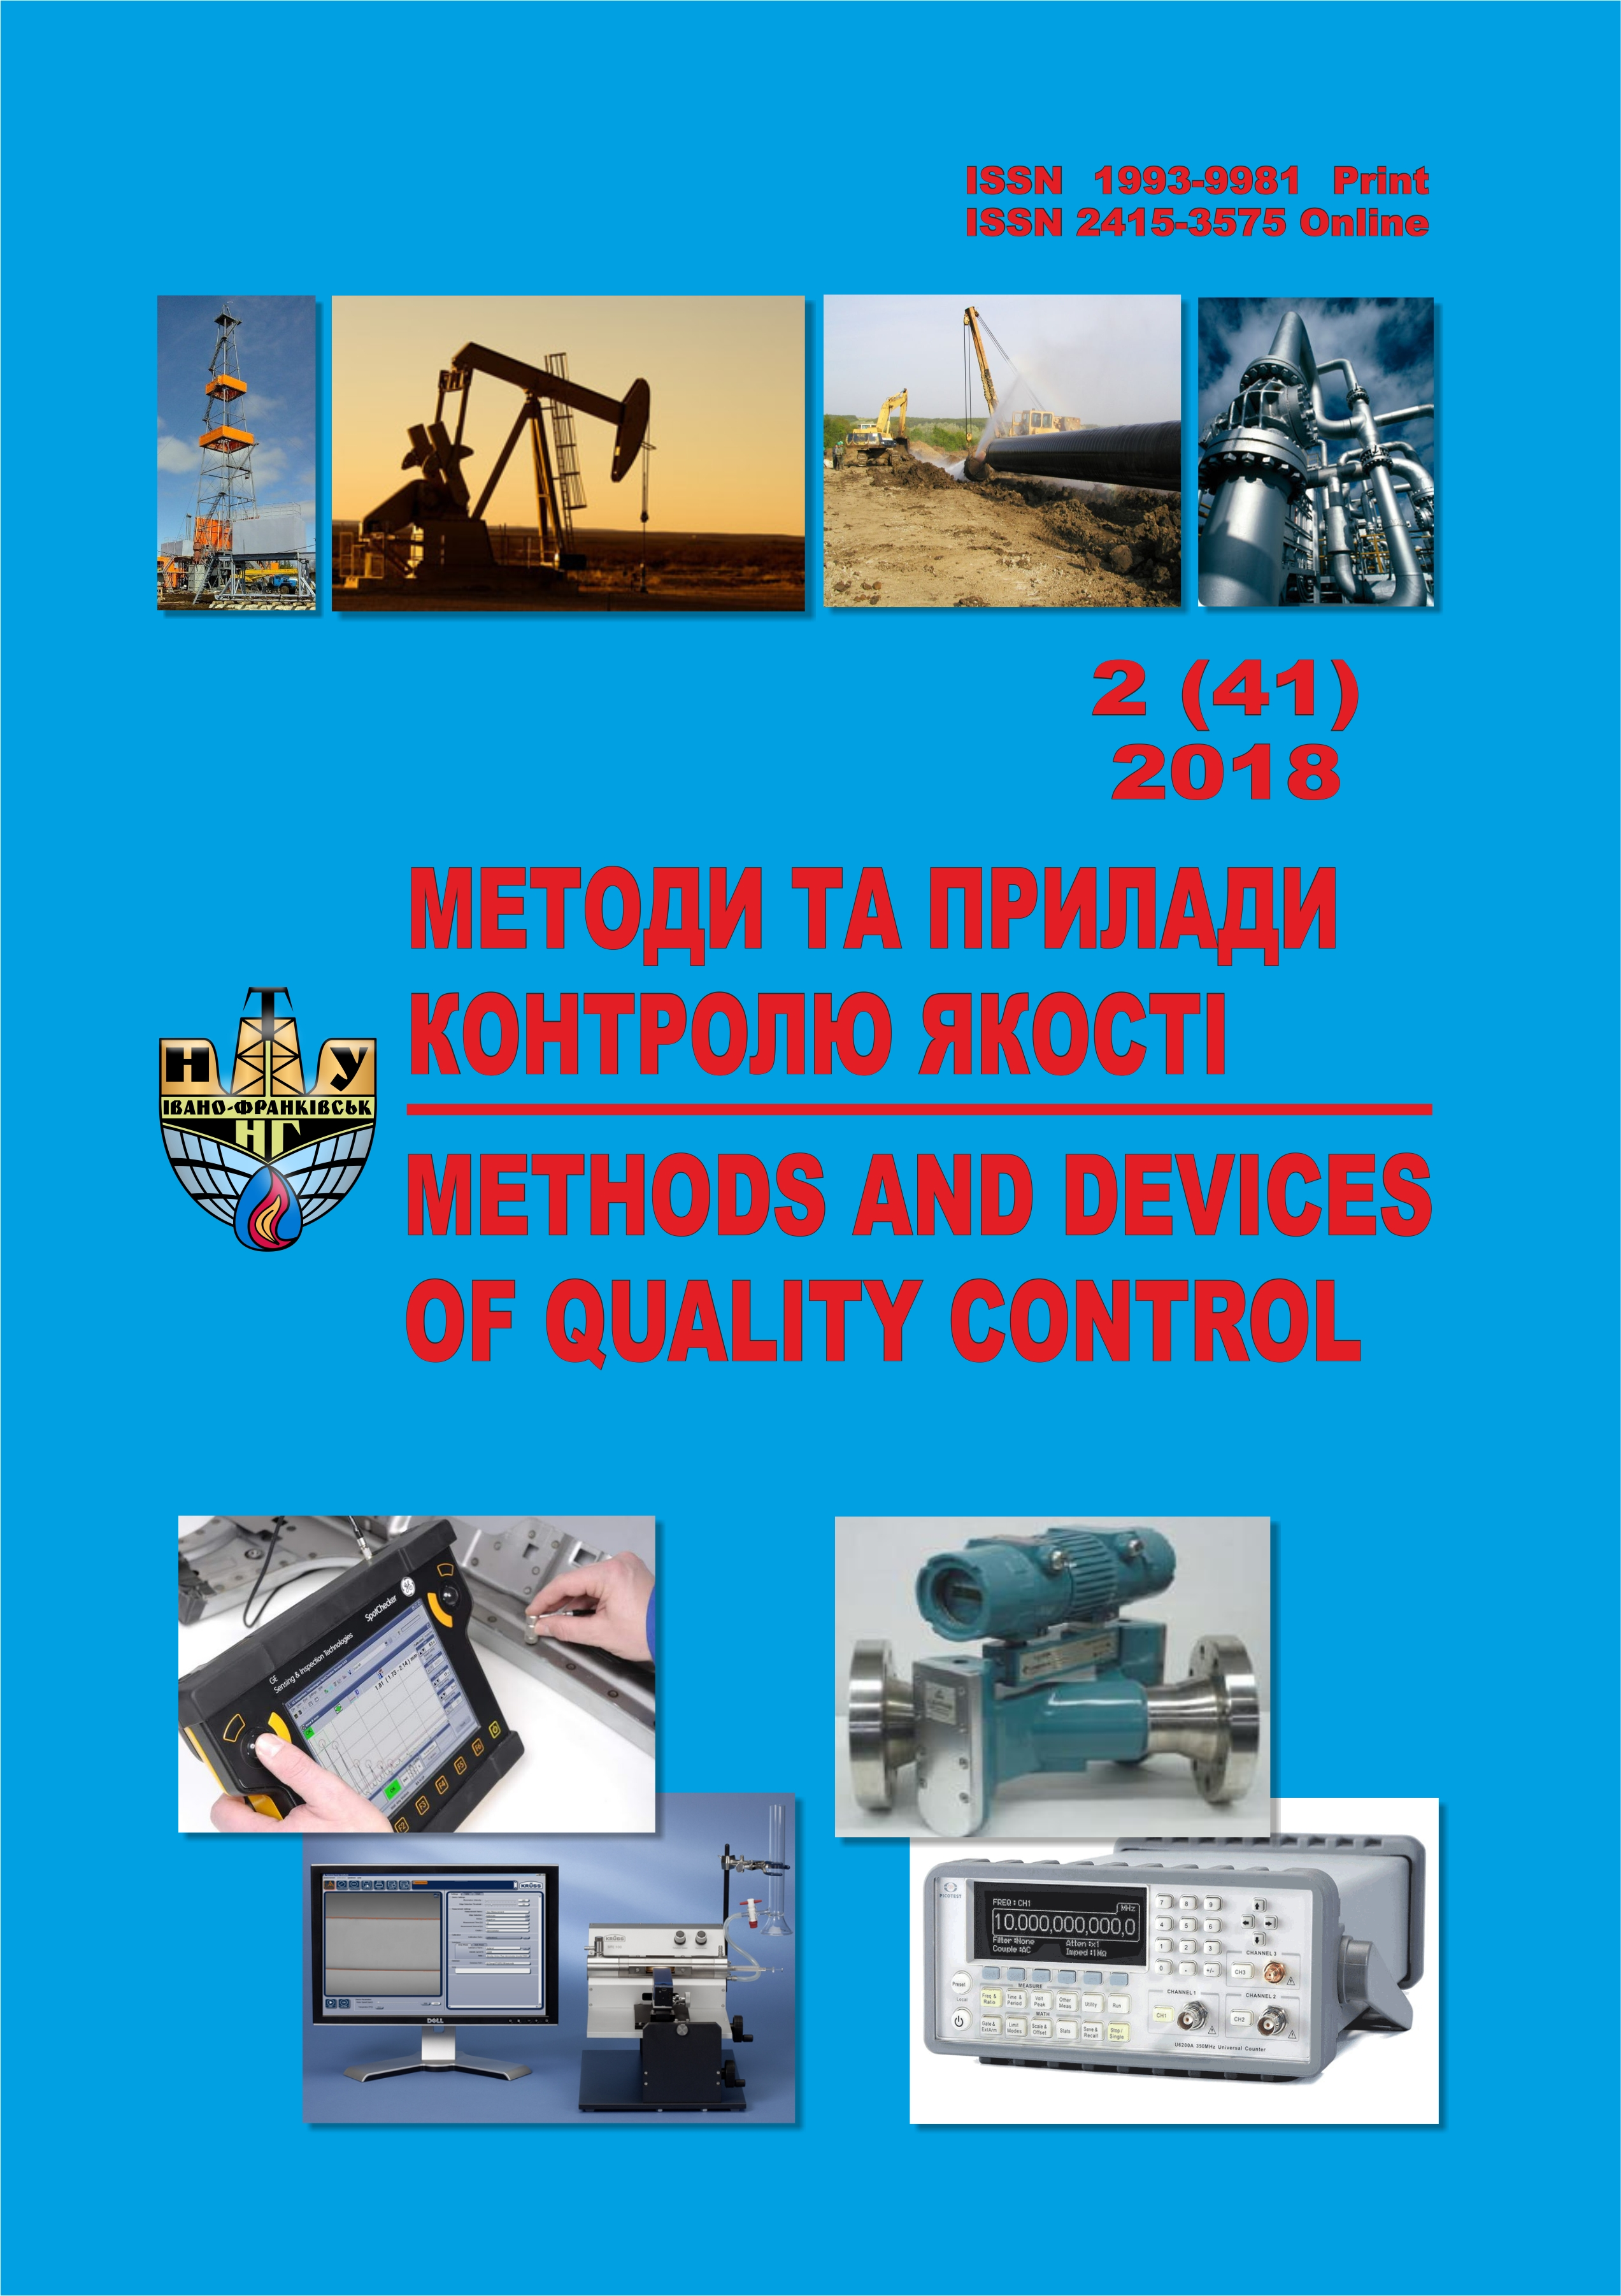 View No. 2(41) (2018): METHODS AND DEVICES OF QUALITY CONTROL